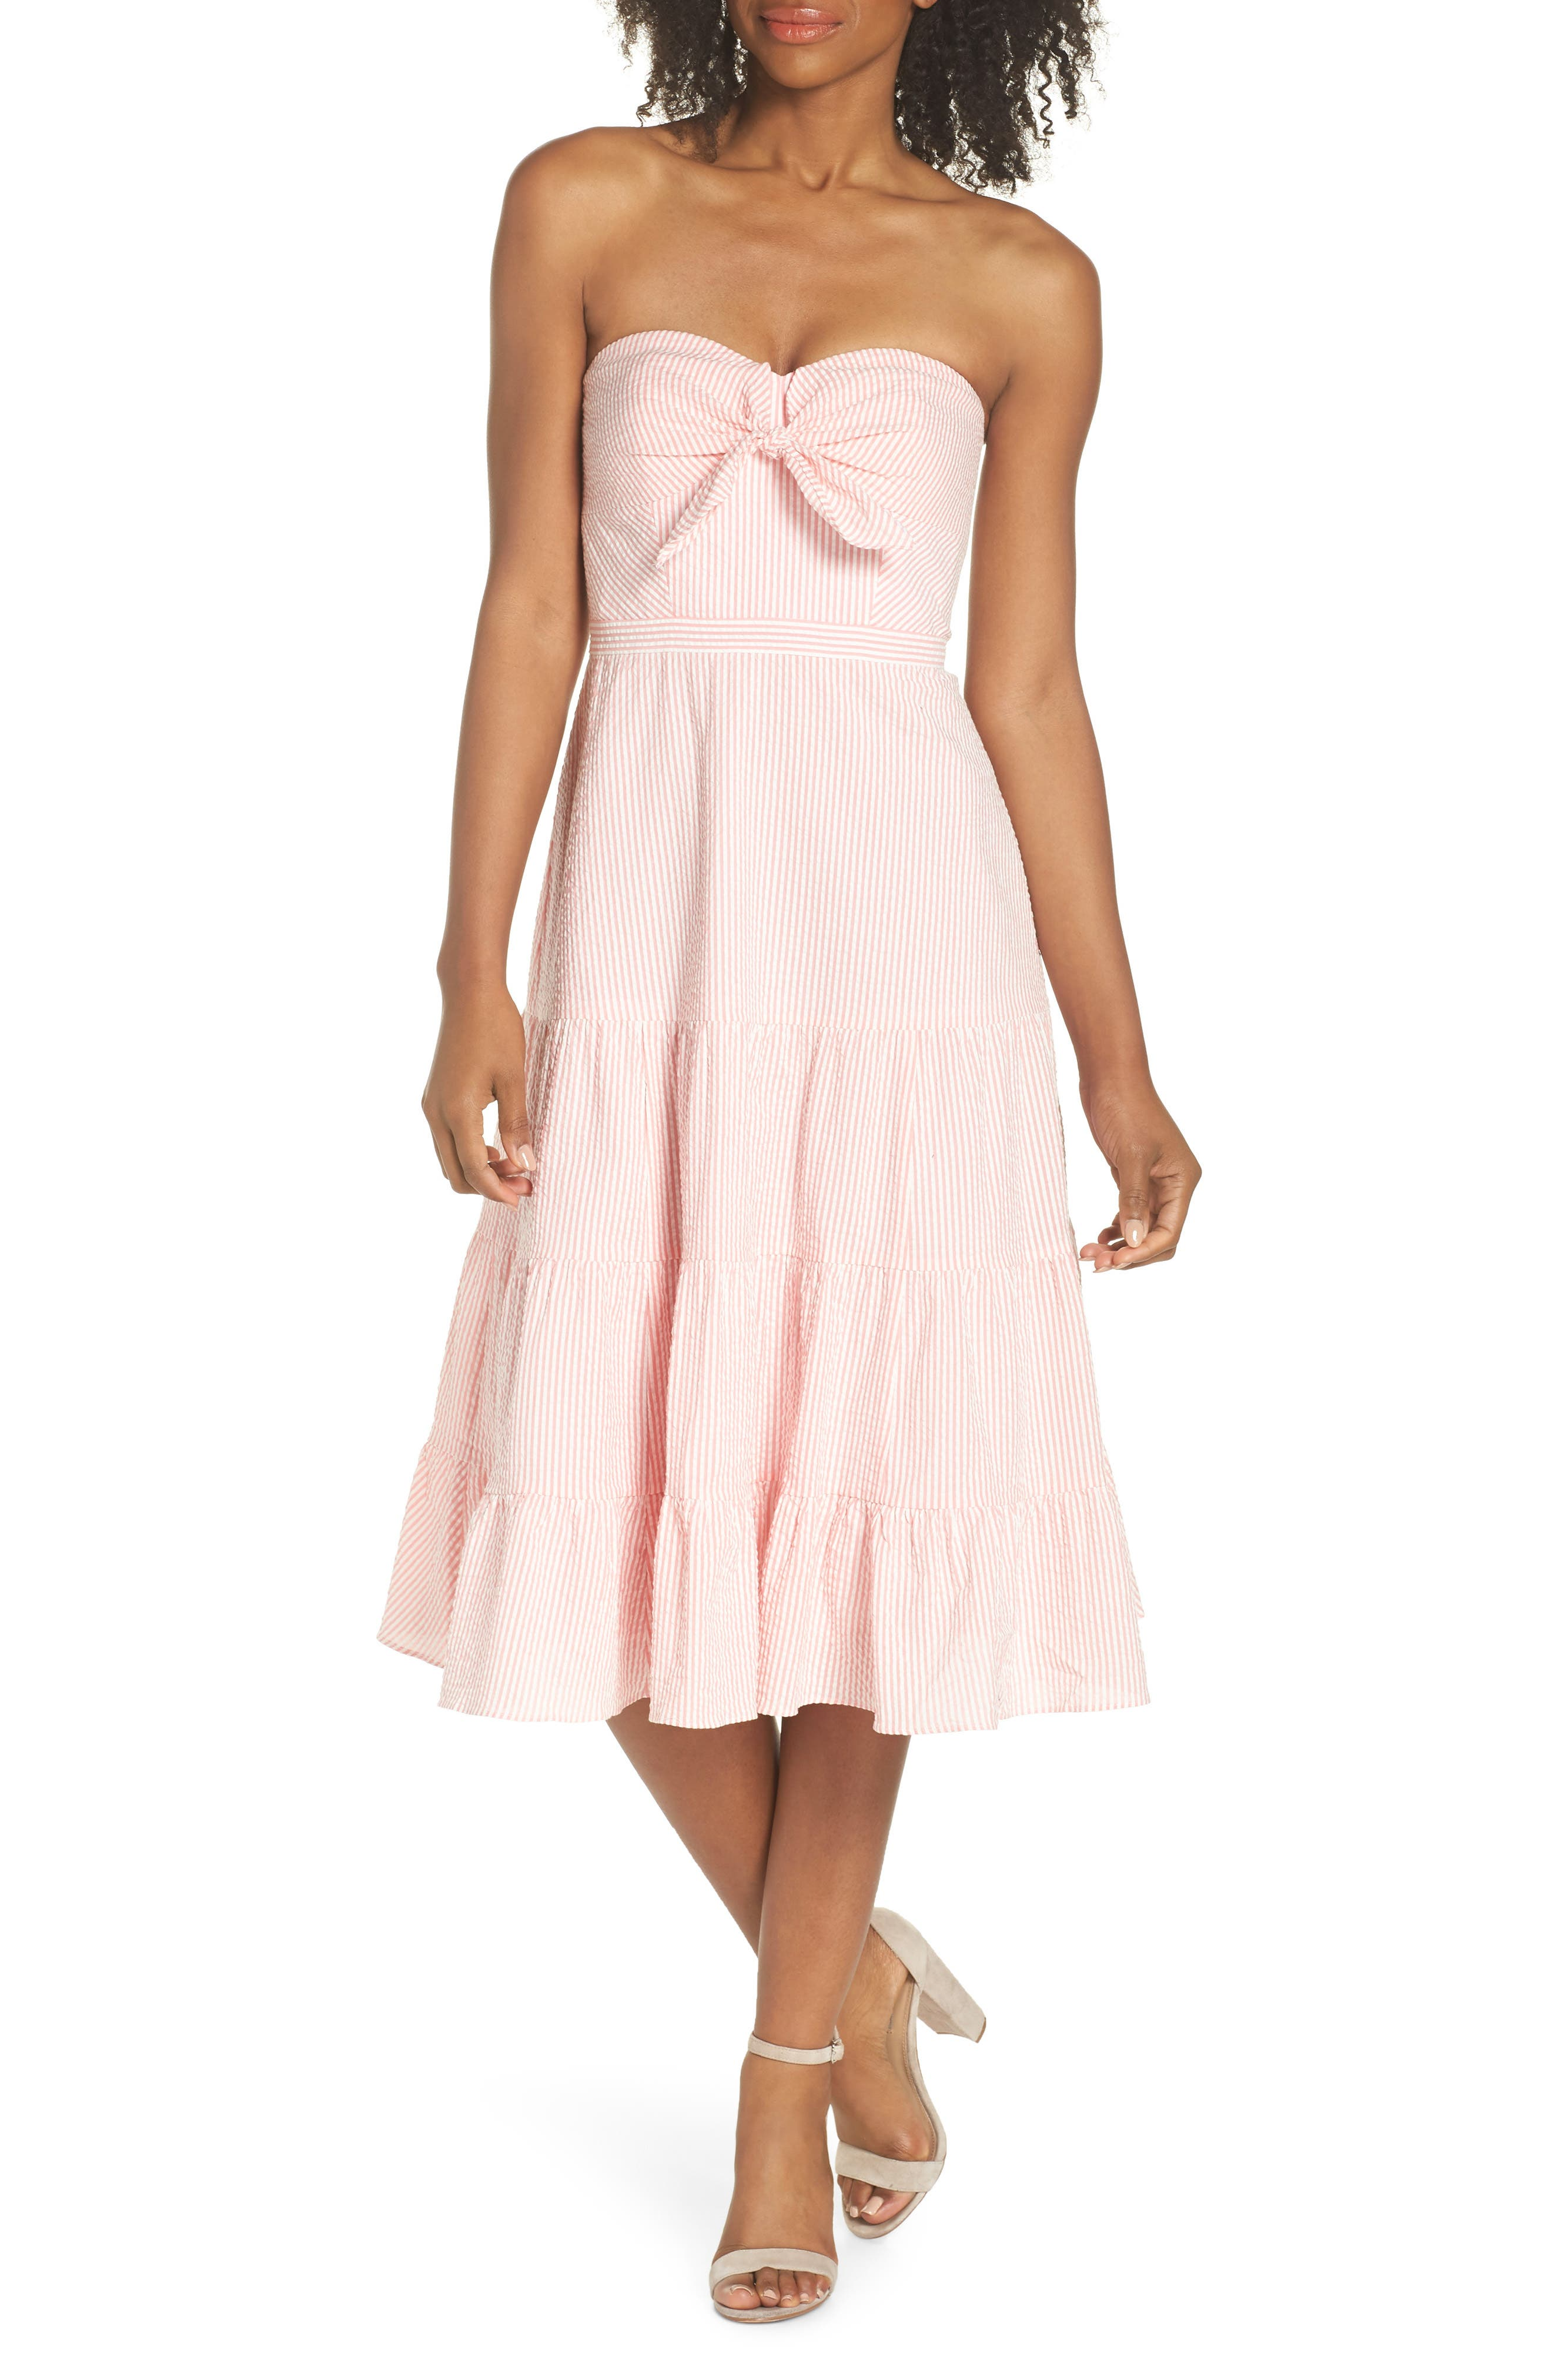 J.Crew Tie Front Strapless Dress,                             Main thumbnail 1, color,                             Bright Coral